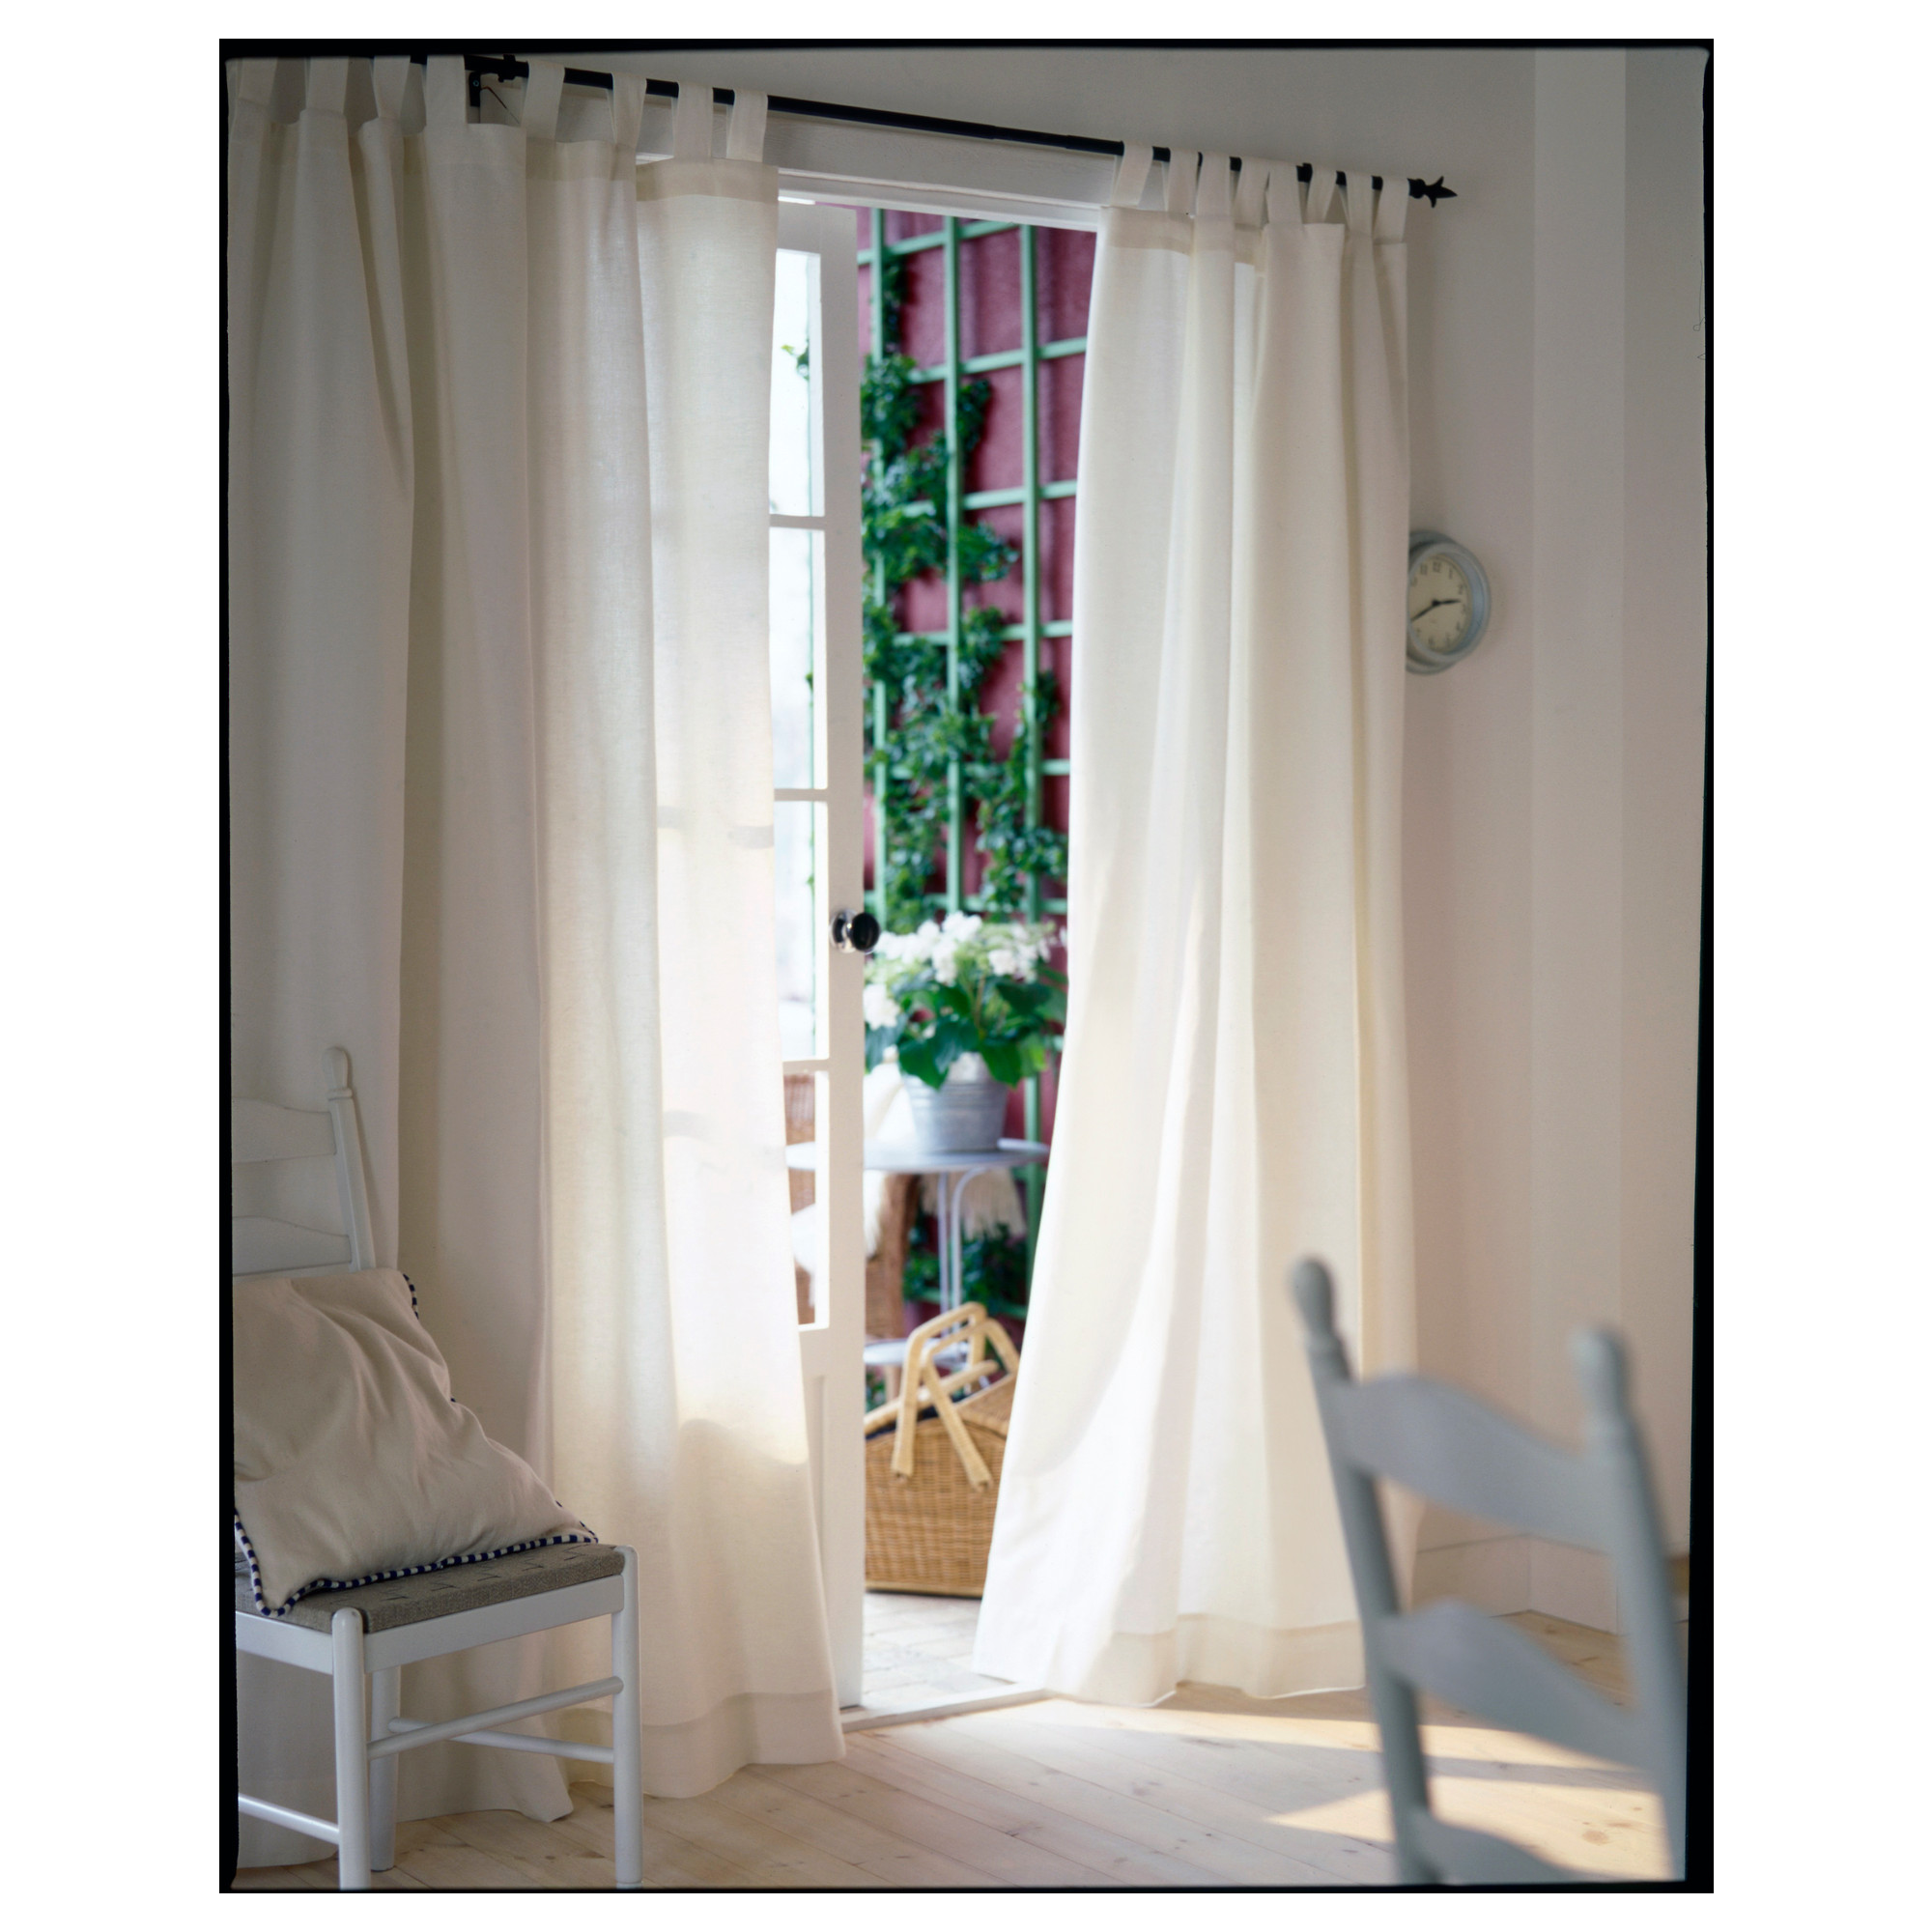 Ritz august for Ikea outdoor curtains